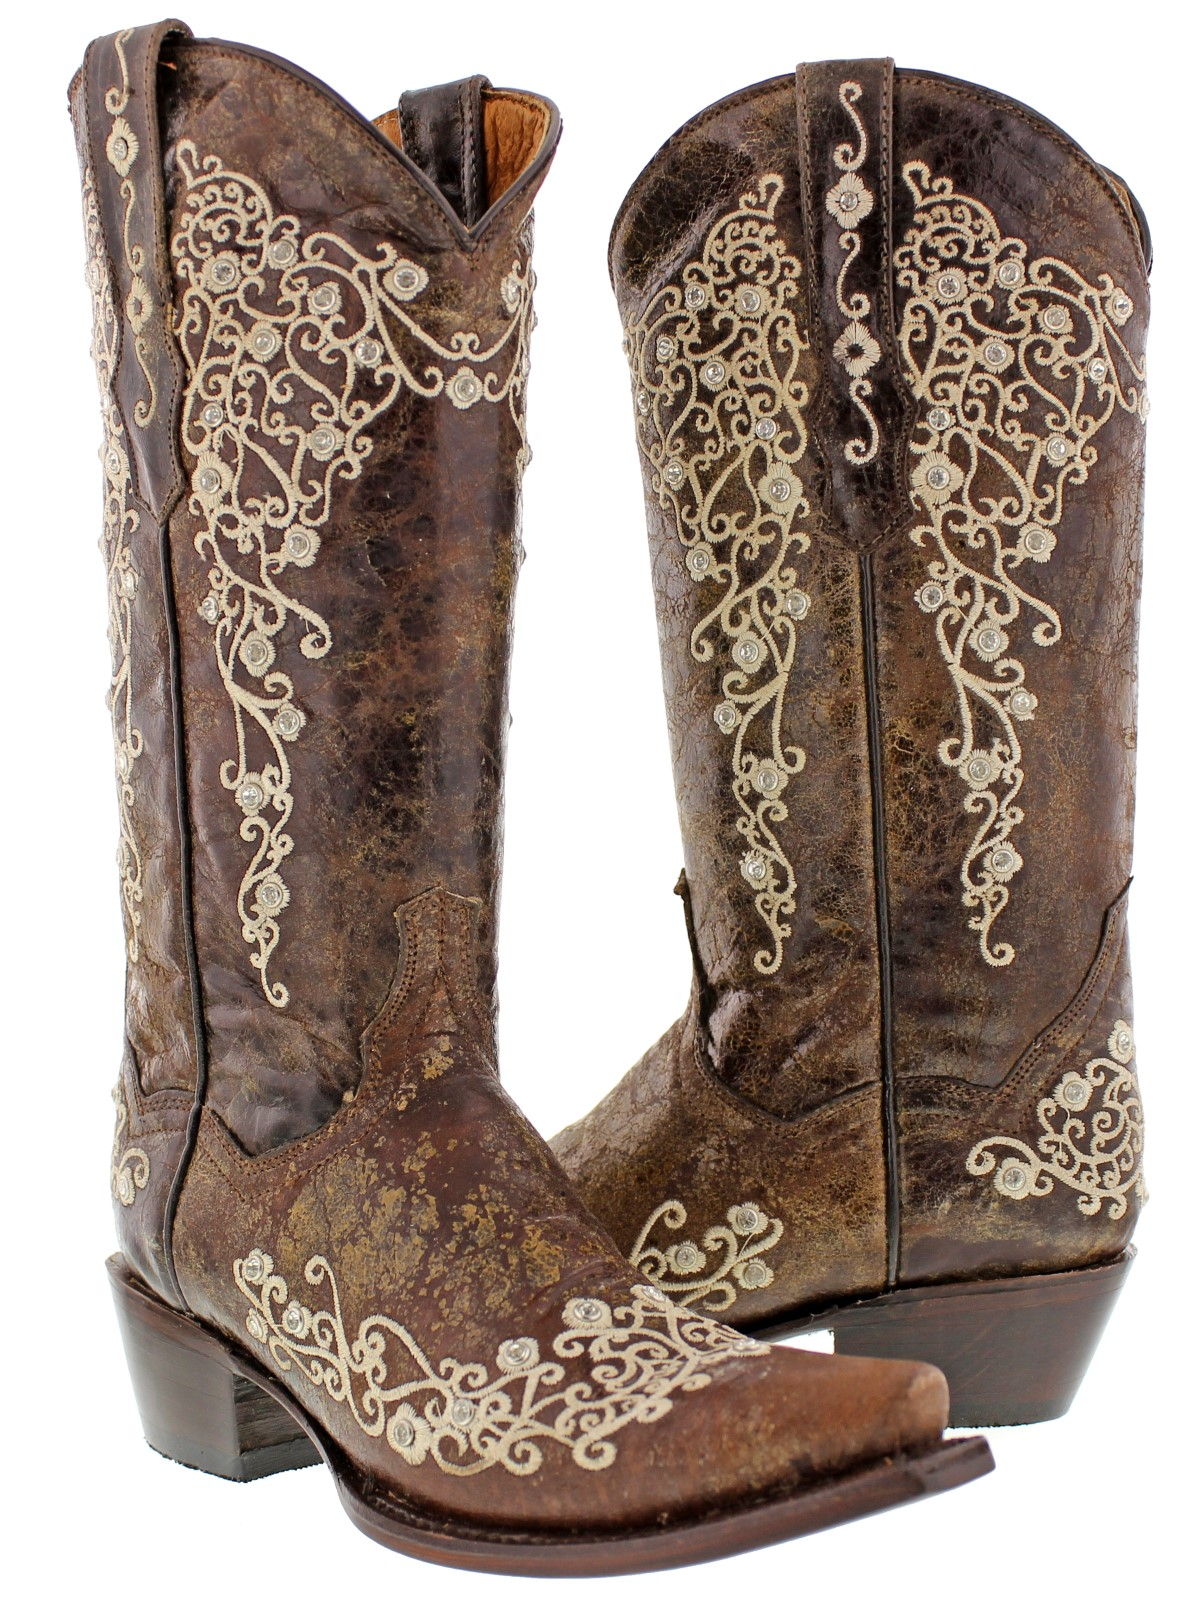 Details about Women\u0027s Medium Brown Western Leather Cowboy Cowgirl Boots  Embroidered Snip Toe